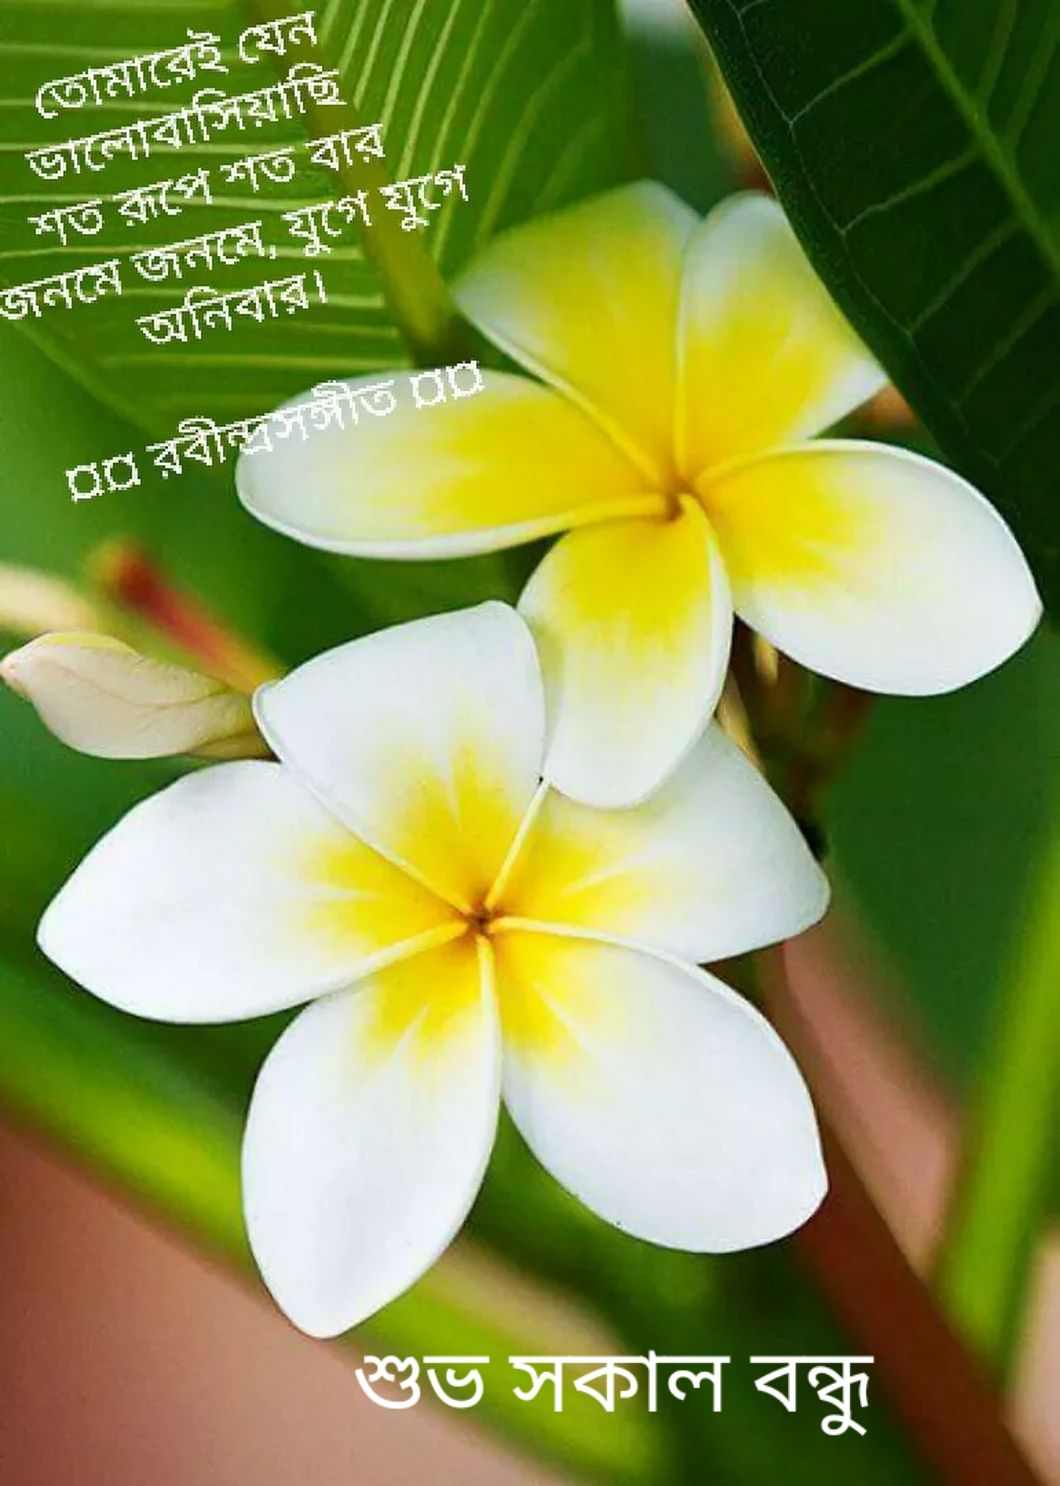 Pin By Love Story On Good Morning Photo English And Bengali Beautiful Flowers Plumeria Flowers Pretty Flowers